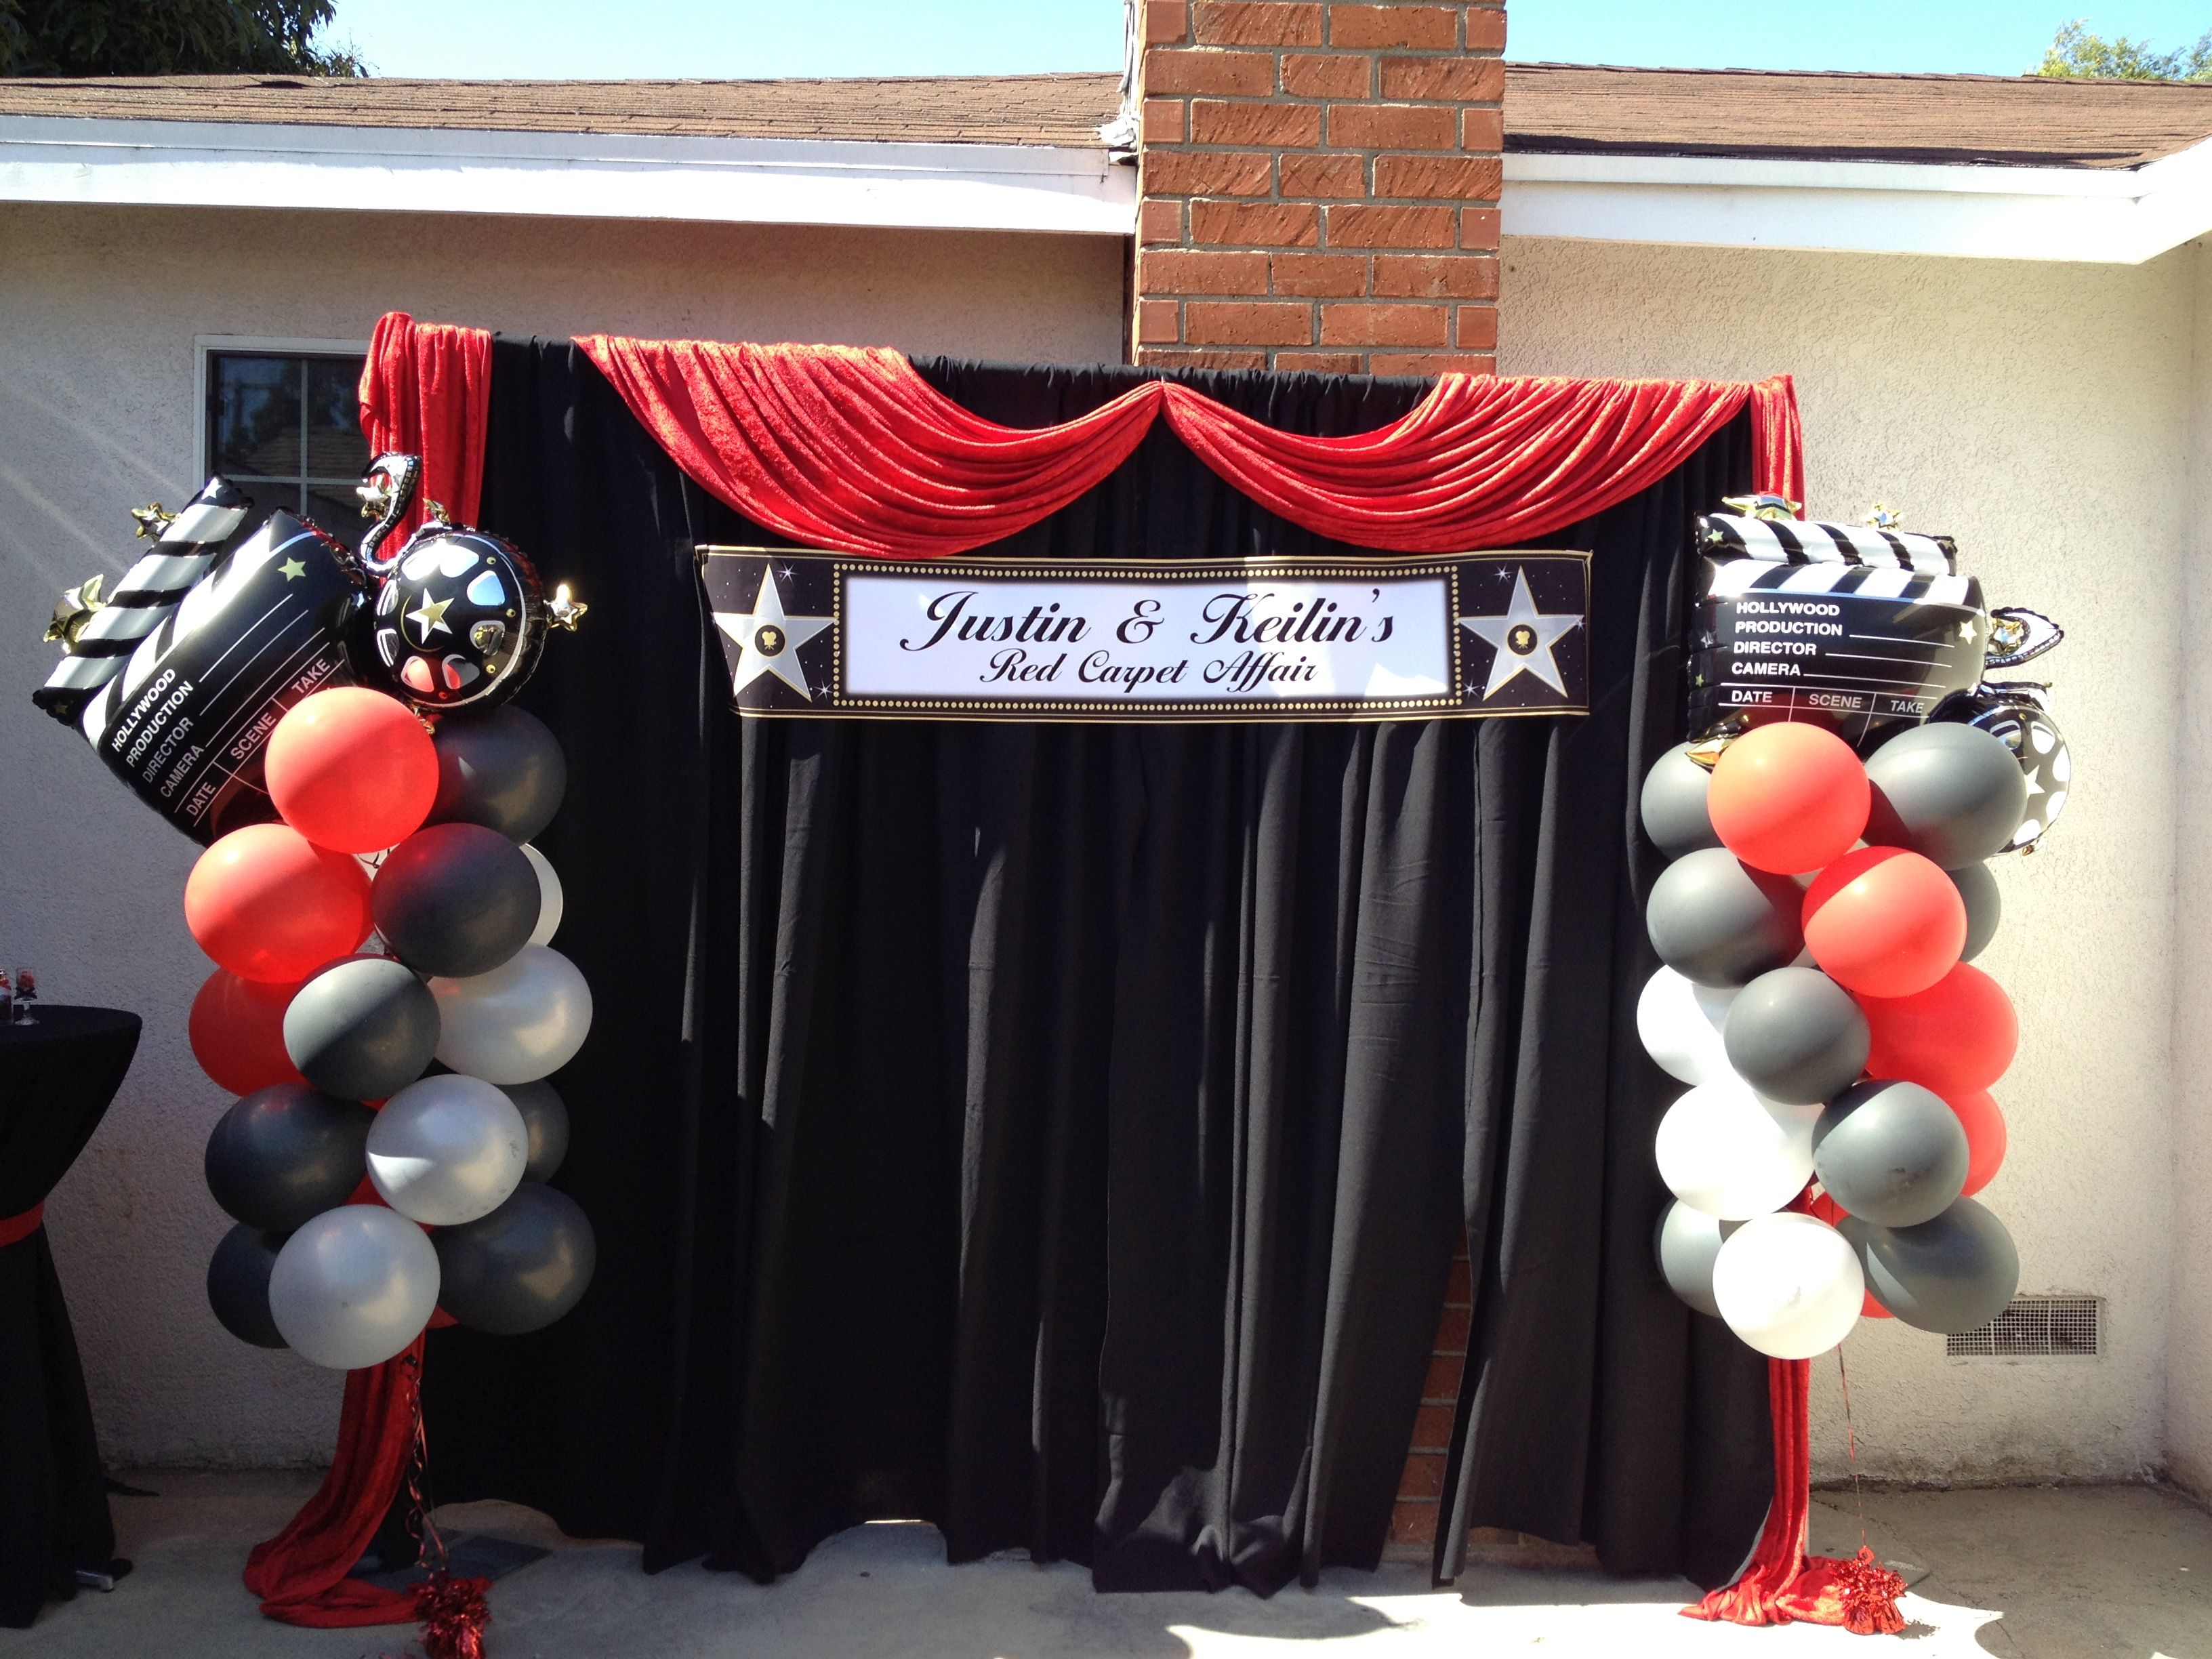 Wedding Reception Seating Ideas besides Beautiful Garden Tent Wedding Doctors House also Red And Black Colors moreover Hollywood Theme Party Invitation Templates as well Great Gatsby Themed Party. on oscar party decorations for tables